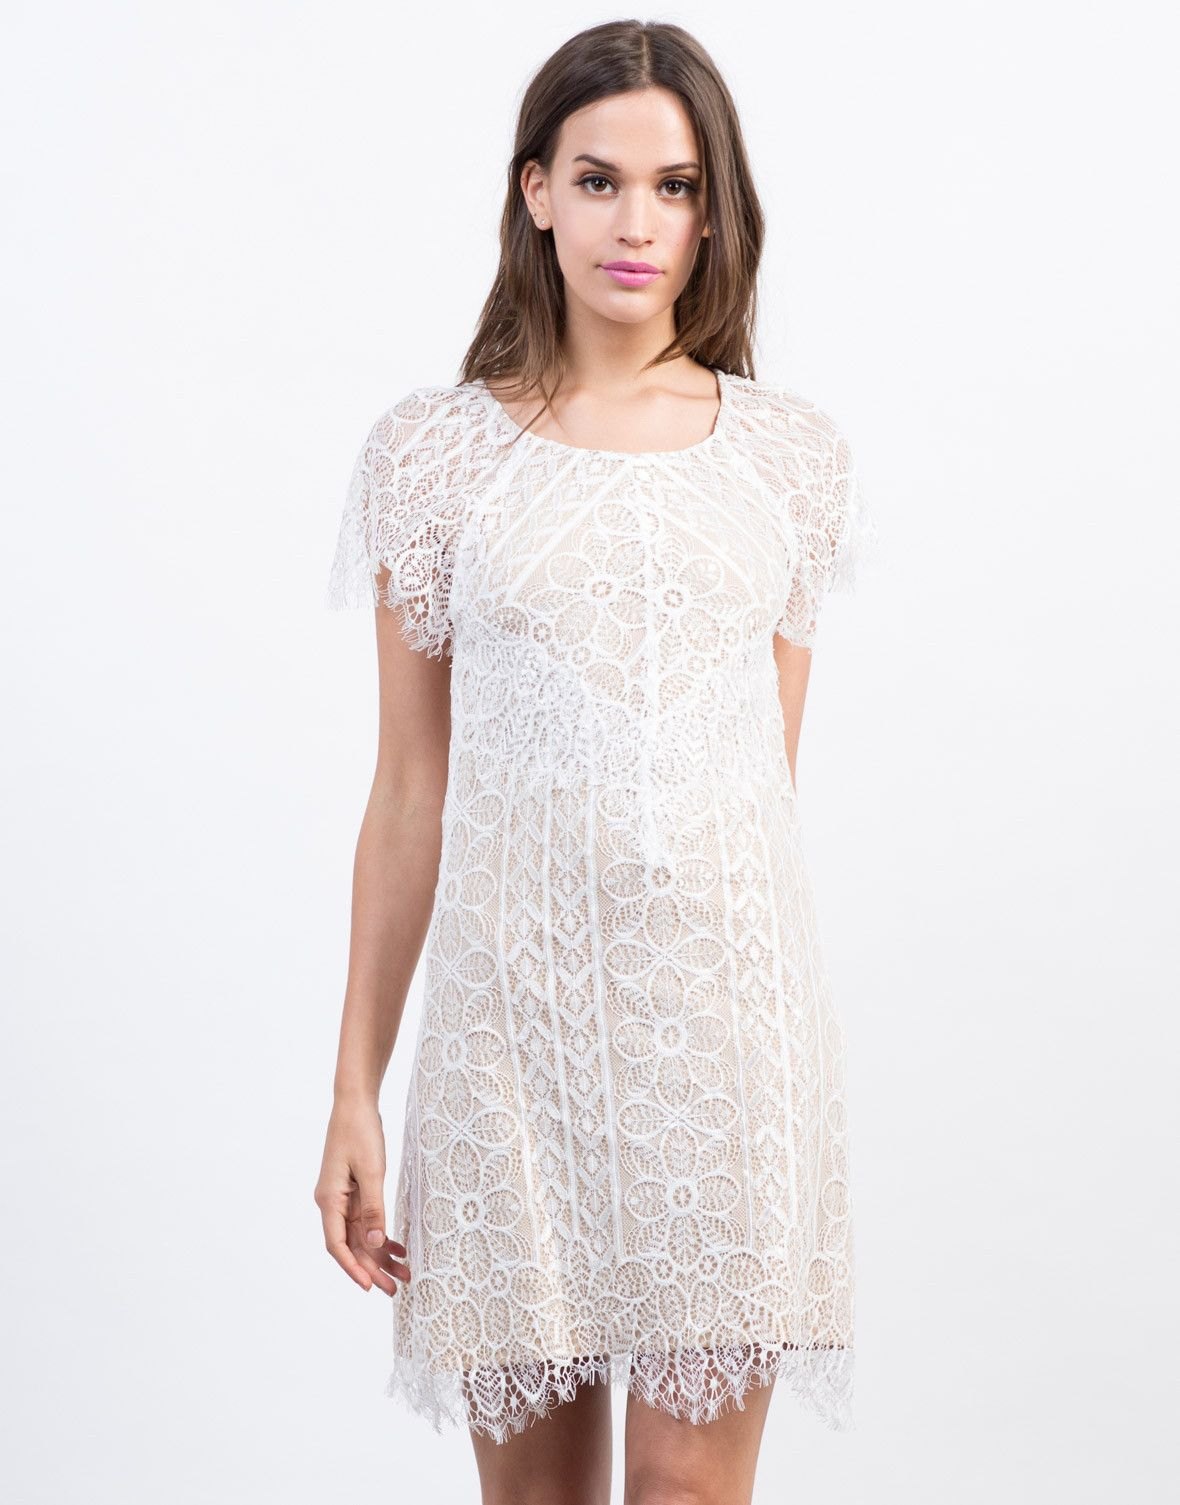 Lace Sheer dress pictures